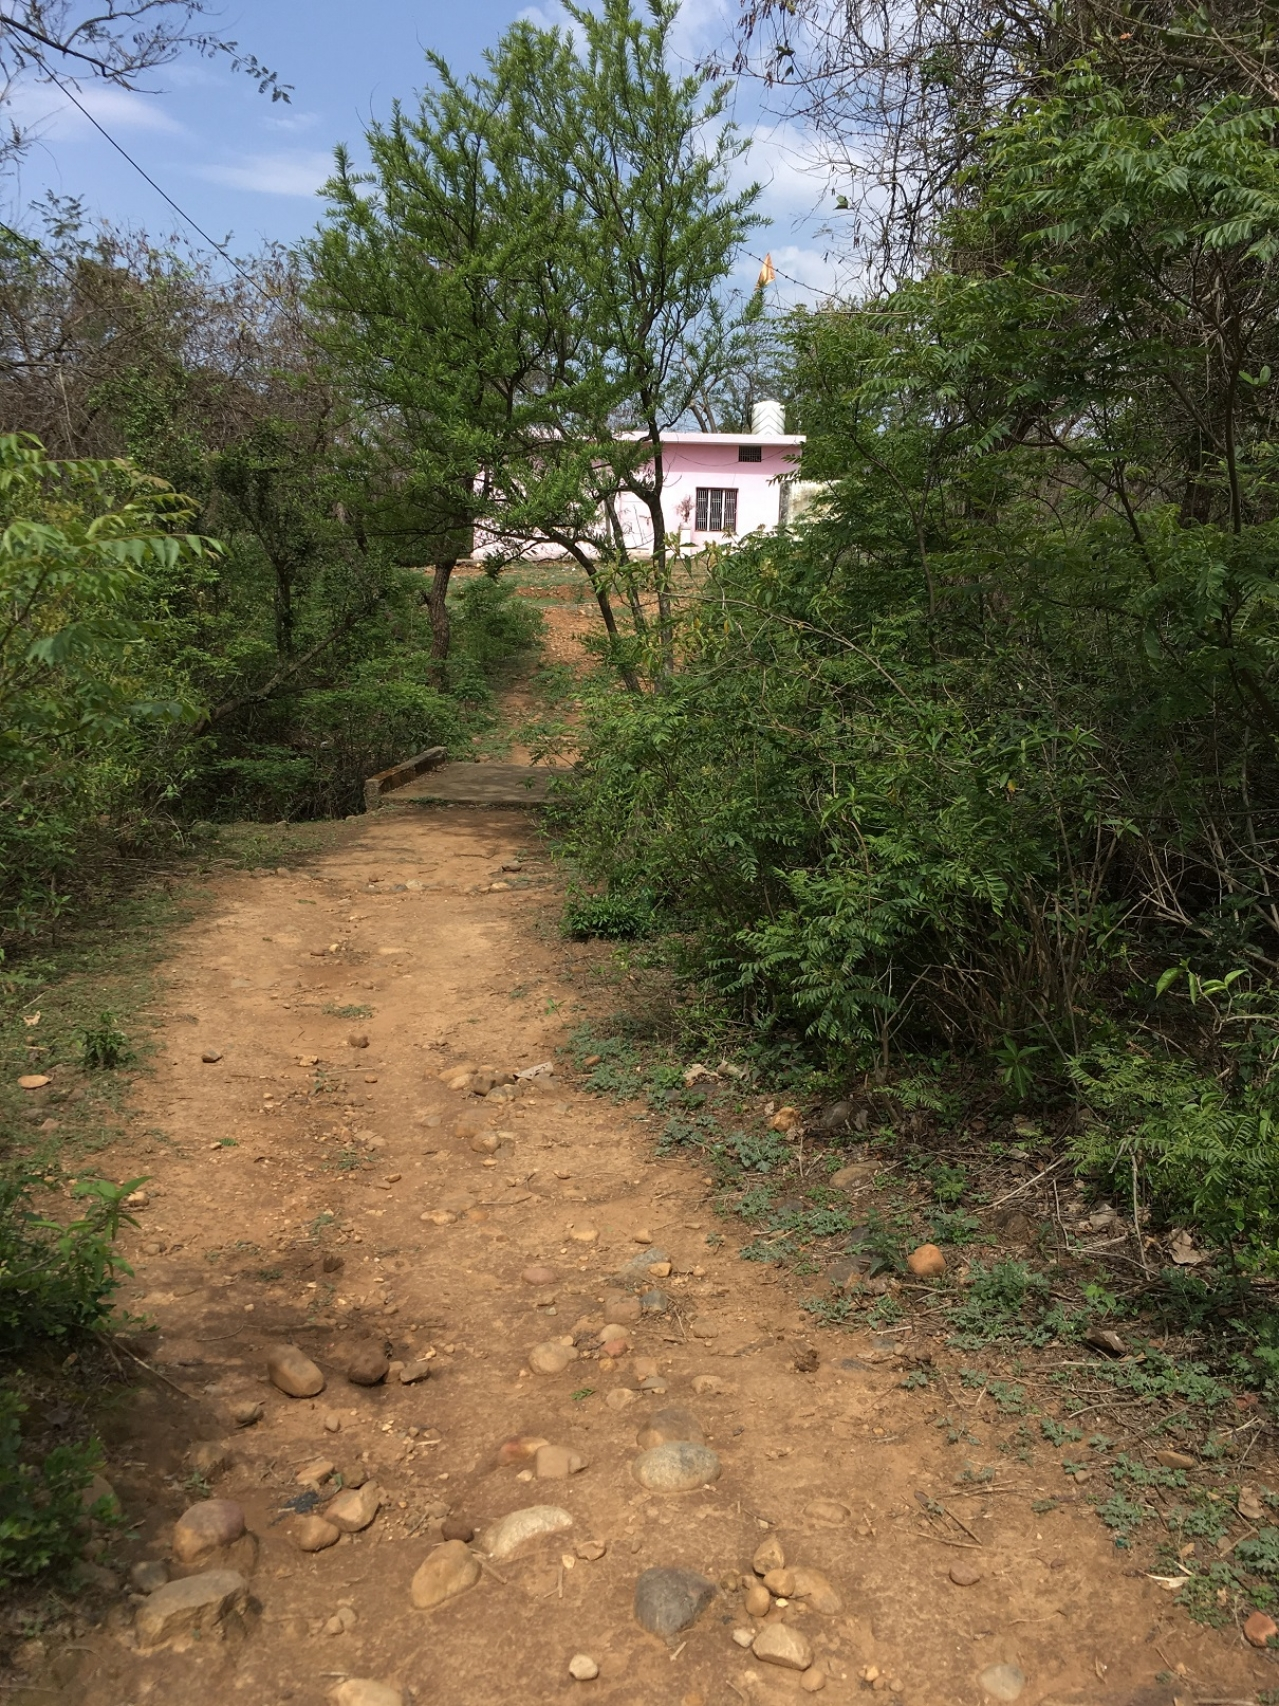 The mud track from Sanji Ram's house that leads to the Devasthan (in pink). The stretch visible is almost half of the entire path. A few steps towards the left leads one to the spot where  the body was allegedly discovered by one Jagdish Raj.